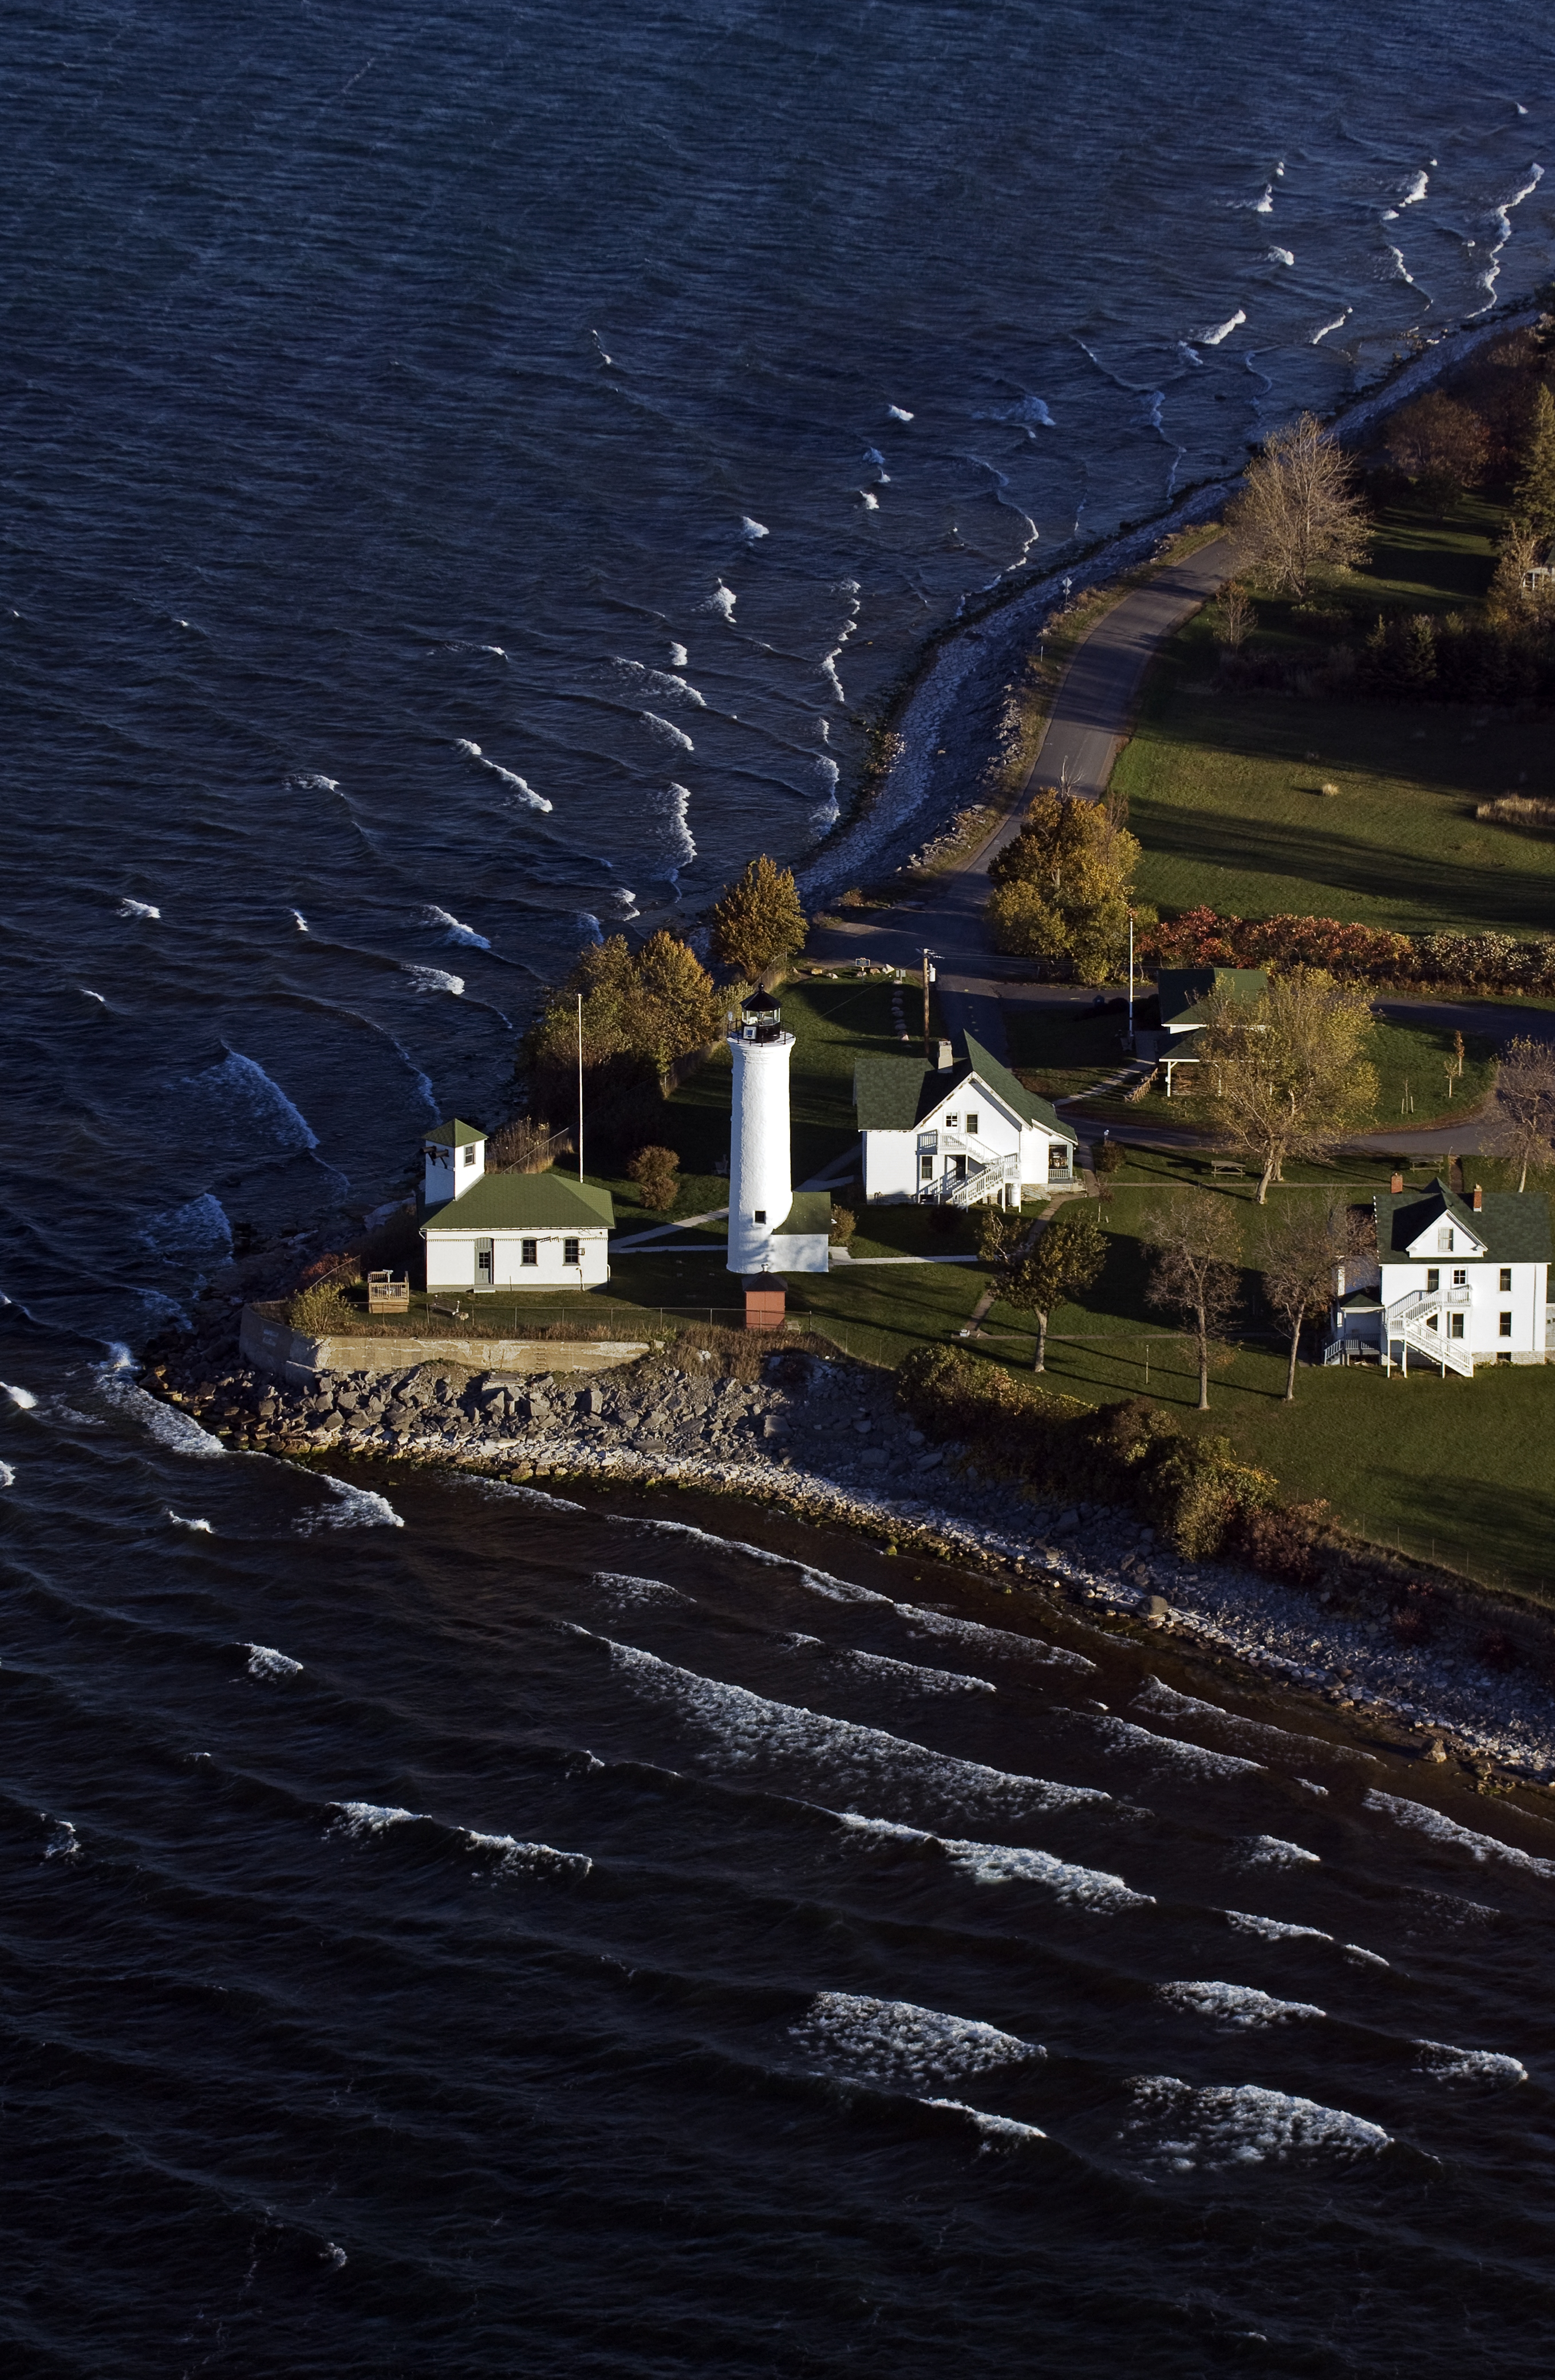 Tibbets Point lighthouse